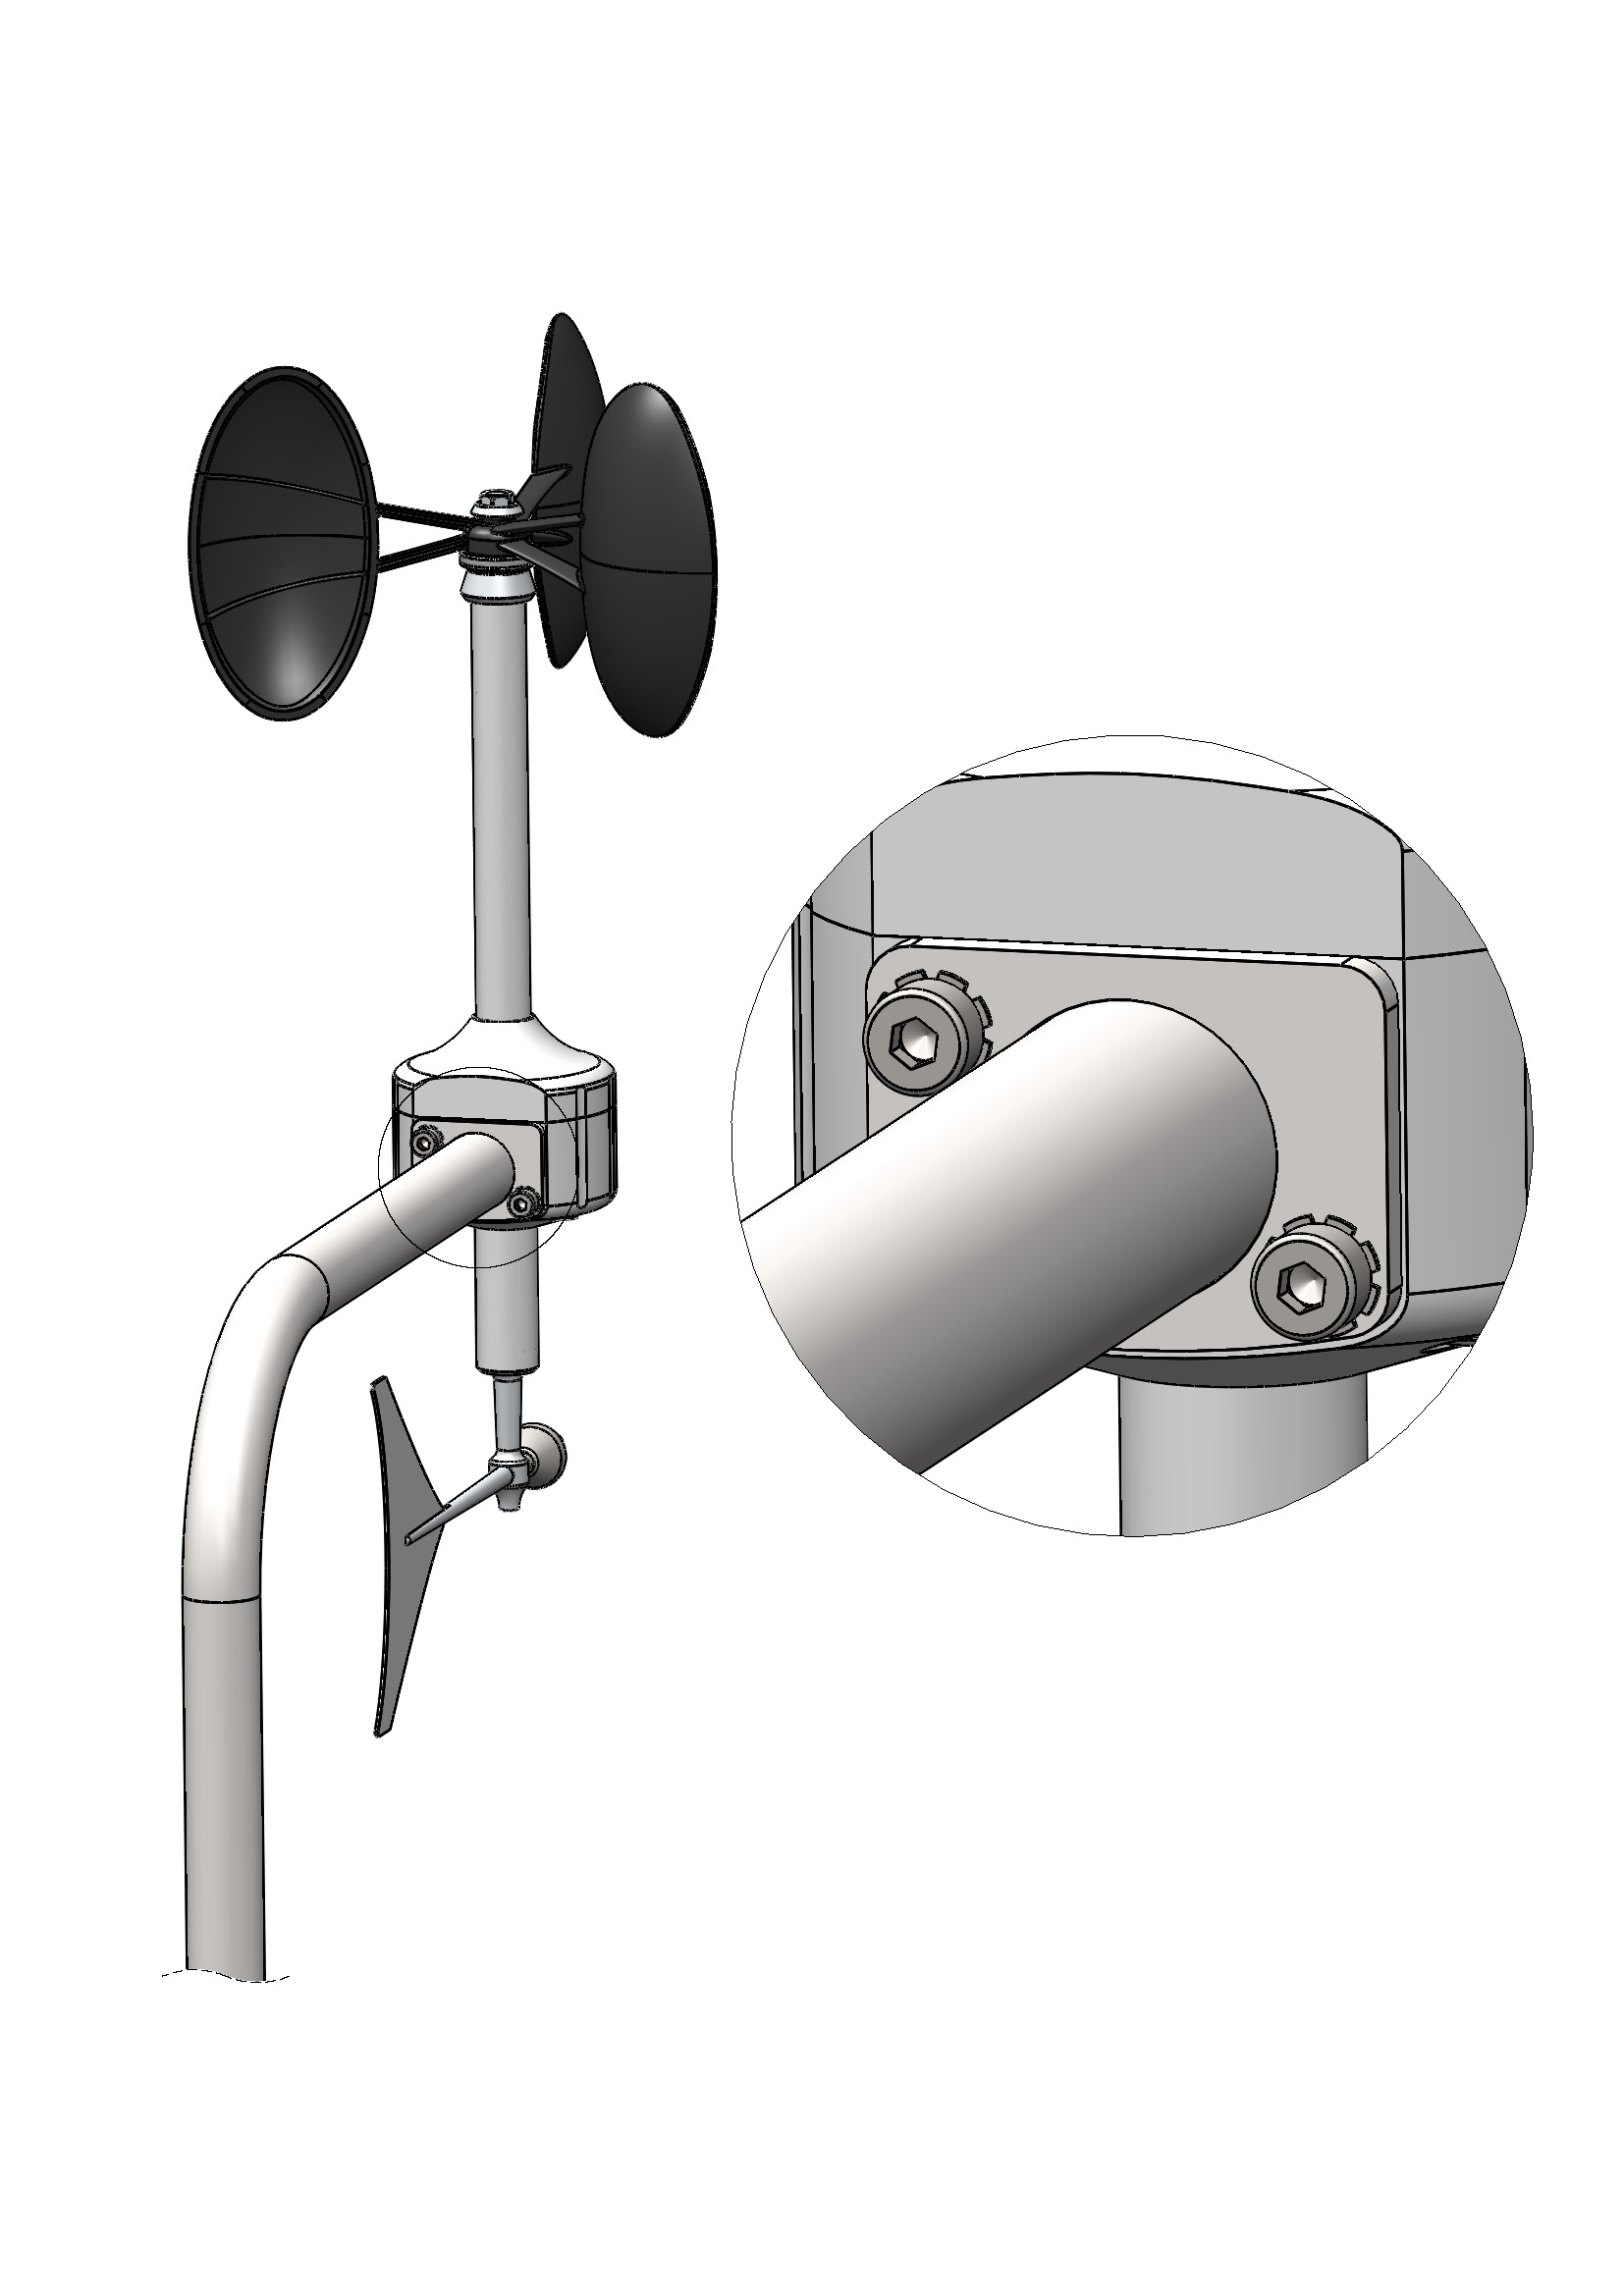 Meteowind 2 anemometer with wind vane mounting.